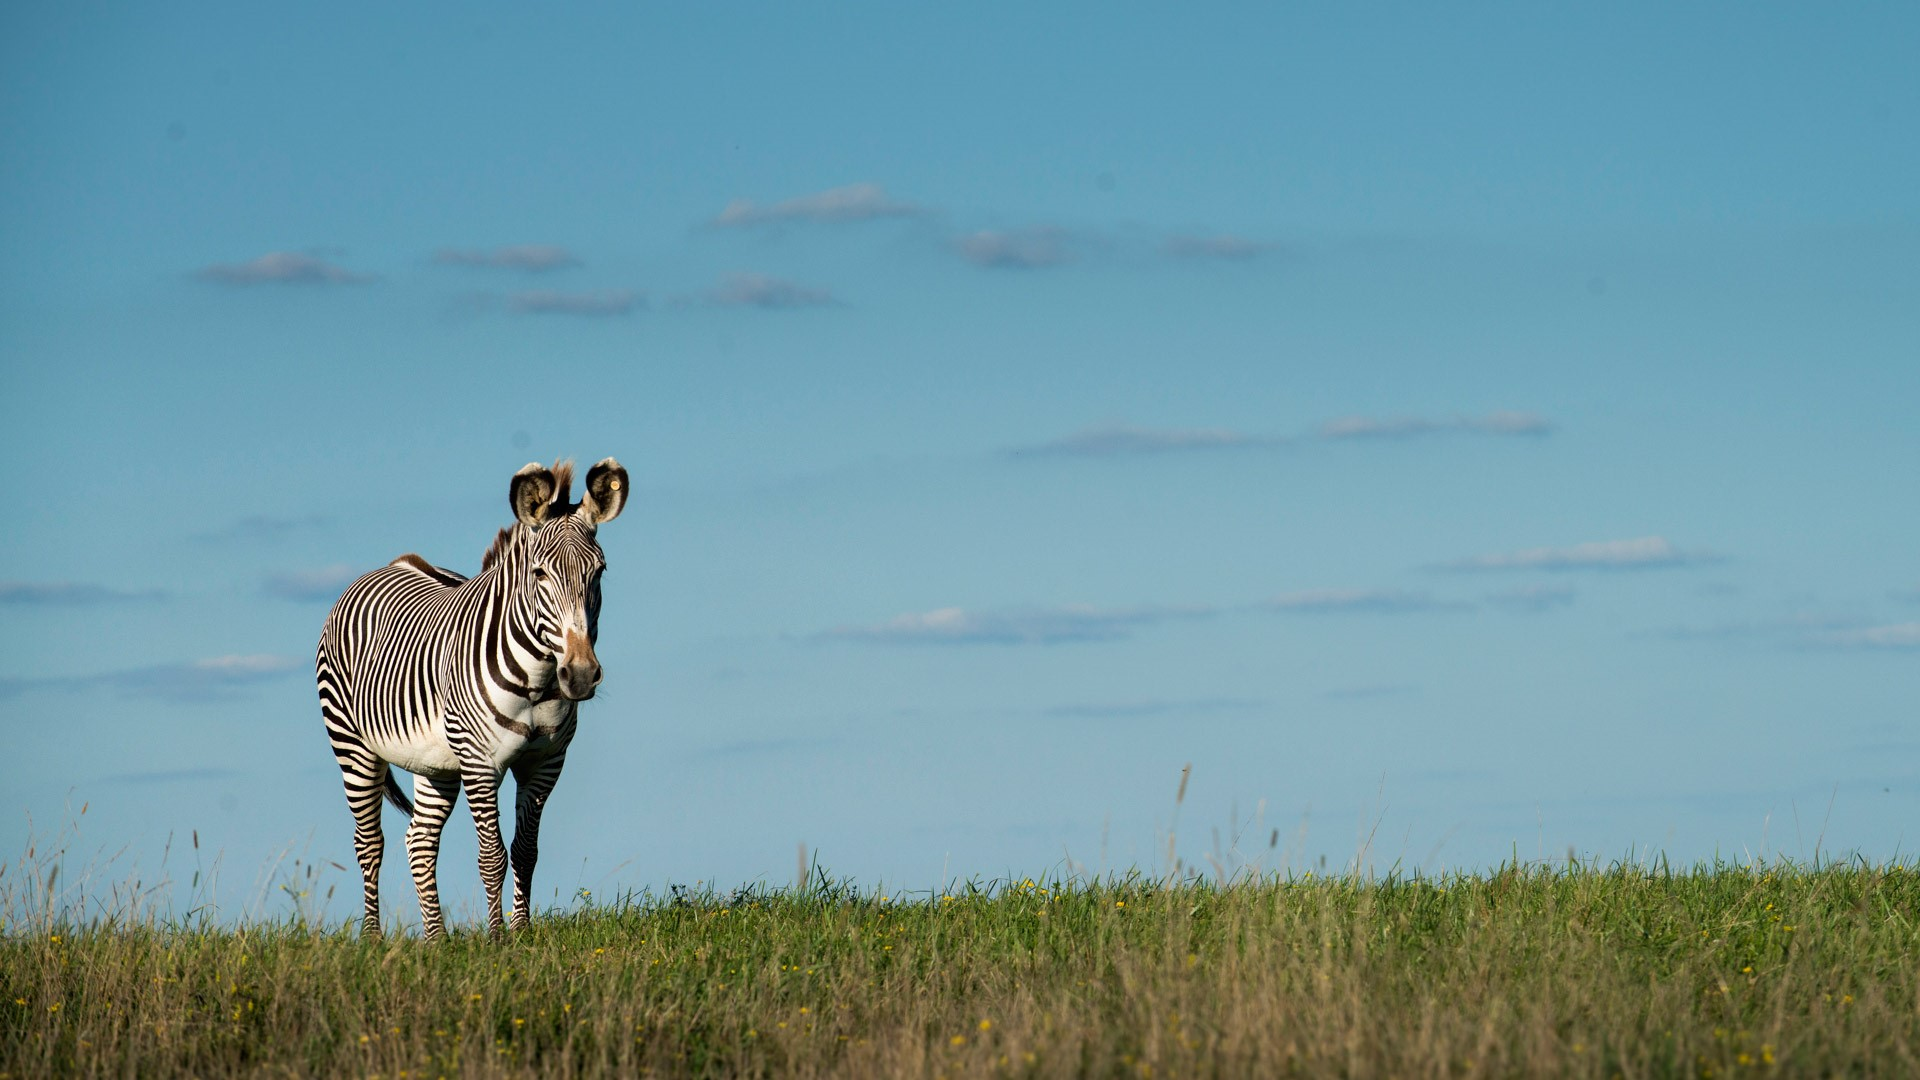 A sole zebra standing in the horizon of a field.